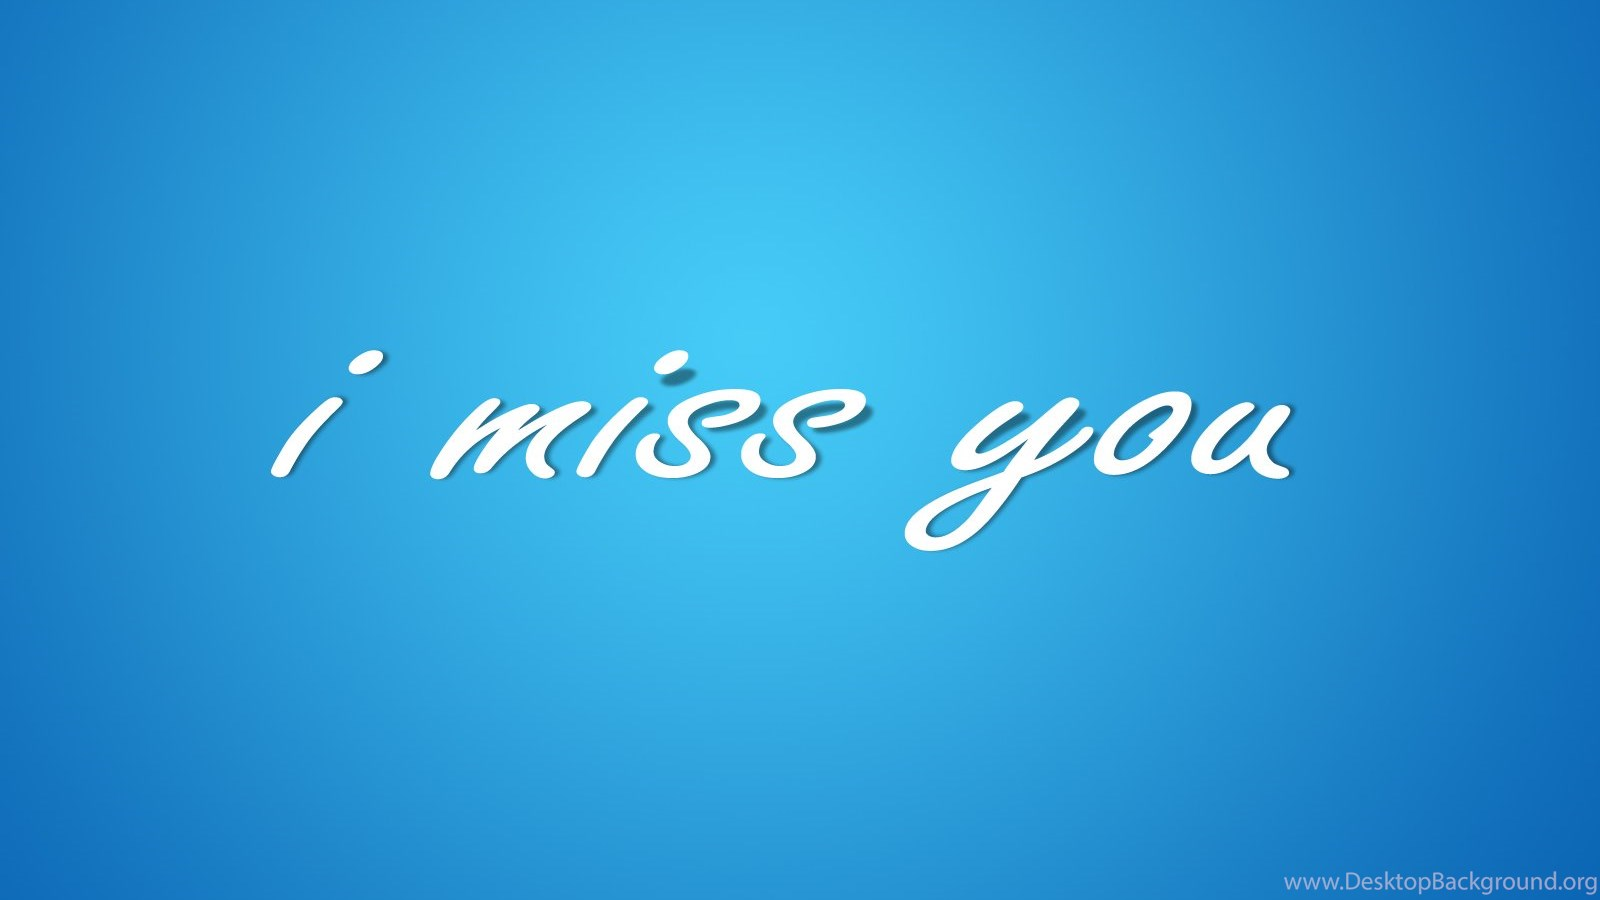 I Miss You Hd Wallpapers Free Download Wallpaperss Hd Desktop Background